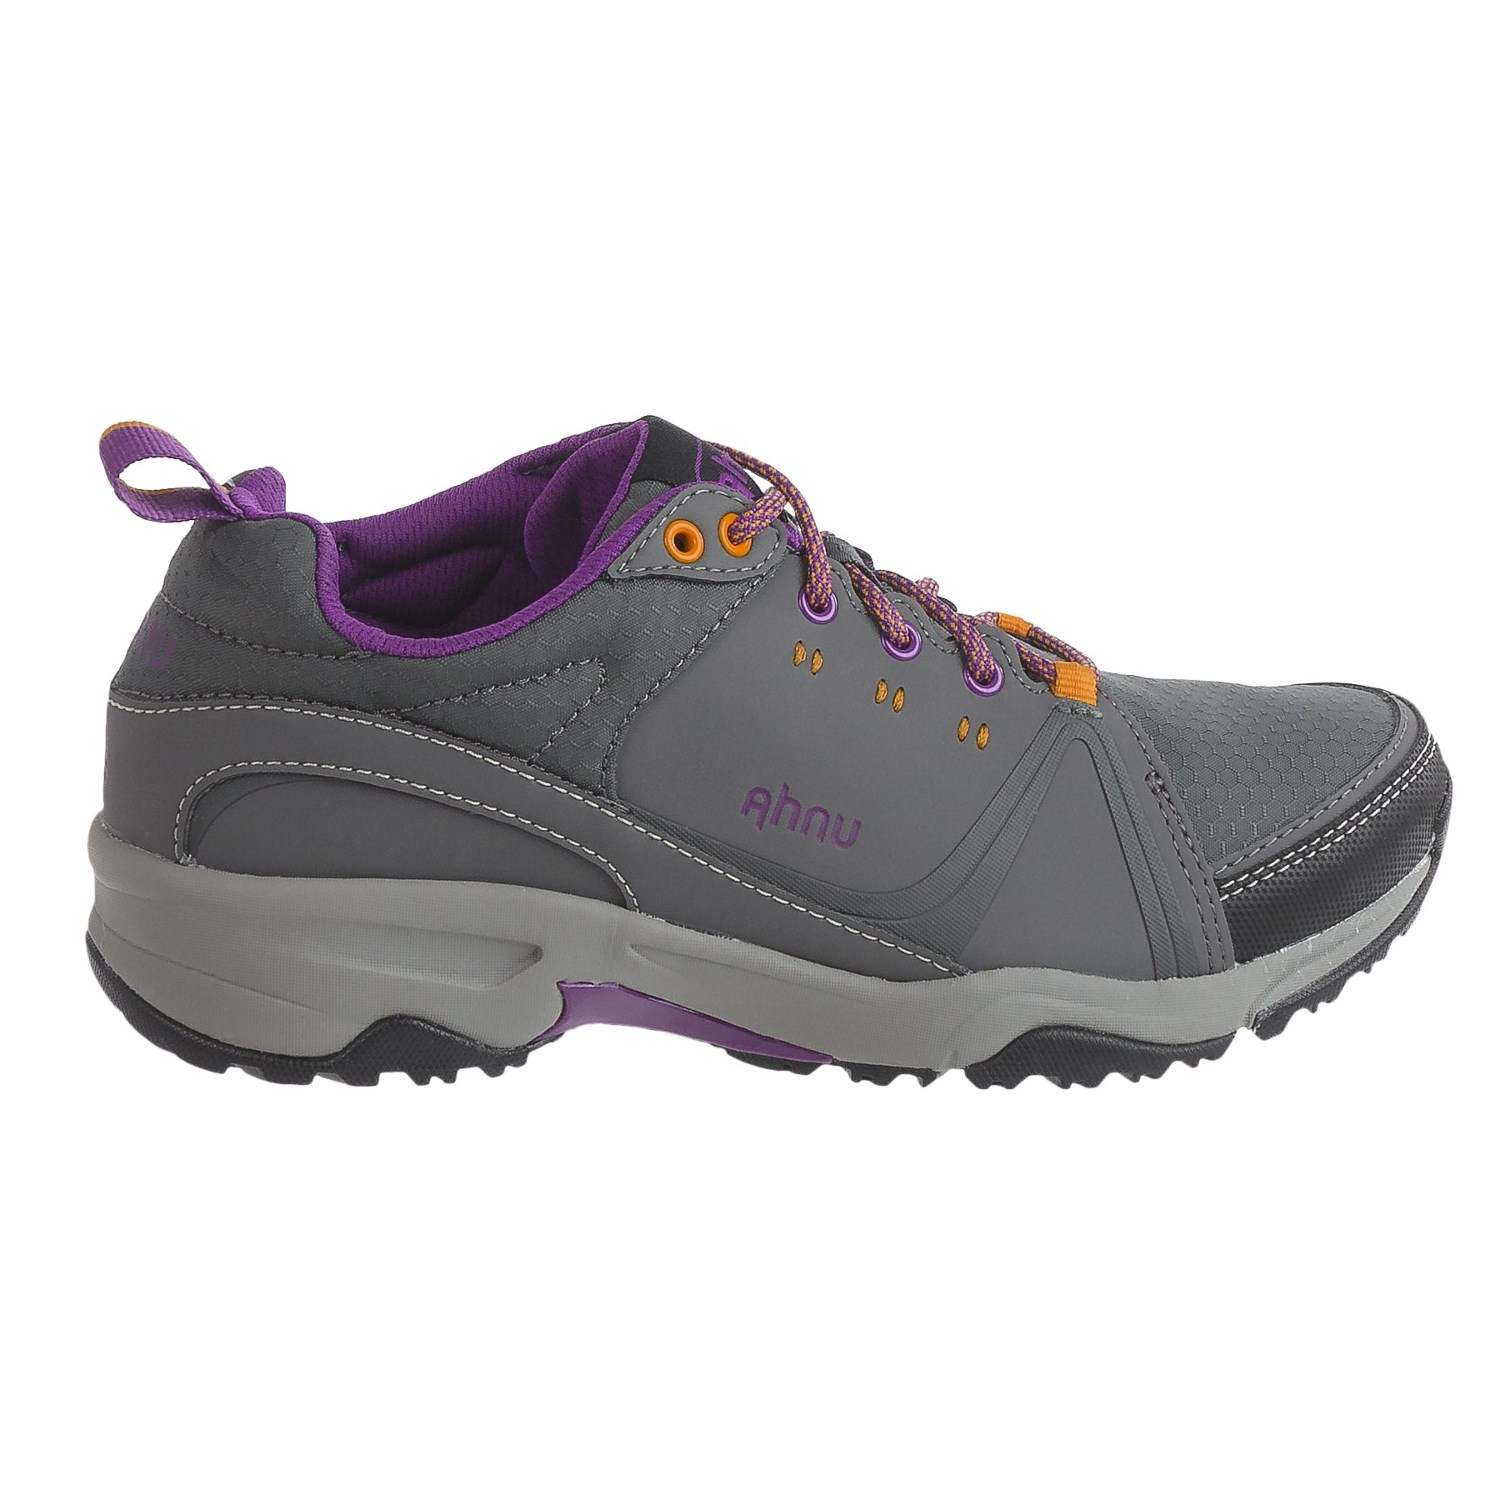 Rain threatening to ruin your day? Charge on through with the reliable women's Ahnu Montara III eVent Low hiking shoes. Their waterproof membranes and Vibram® outsoles keep you dry and stable. Available at REI, % Satisfaction Guaranteed.